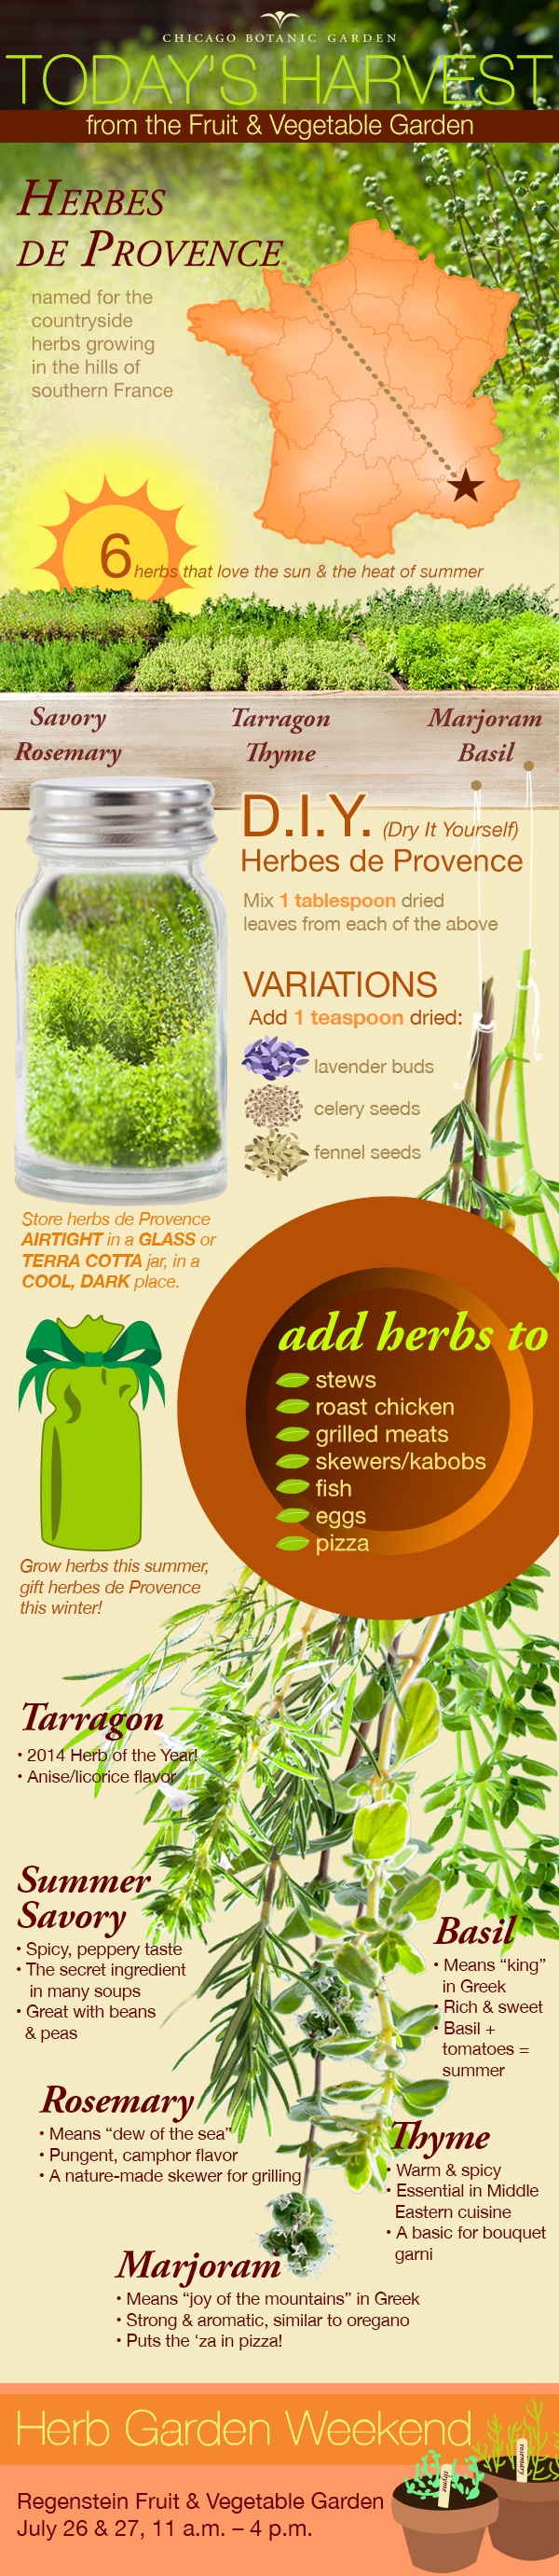 Vegetable garden graphic - An Infographic On Cultivating The Herbs Of Herbs De Provence